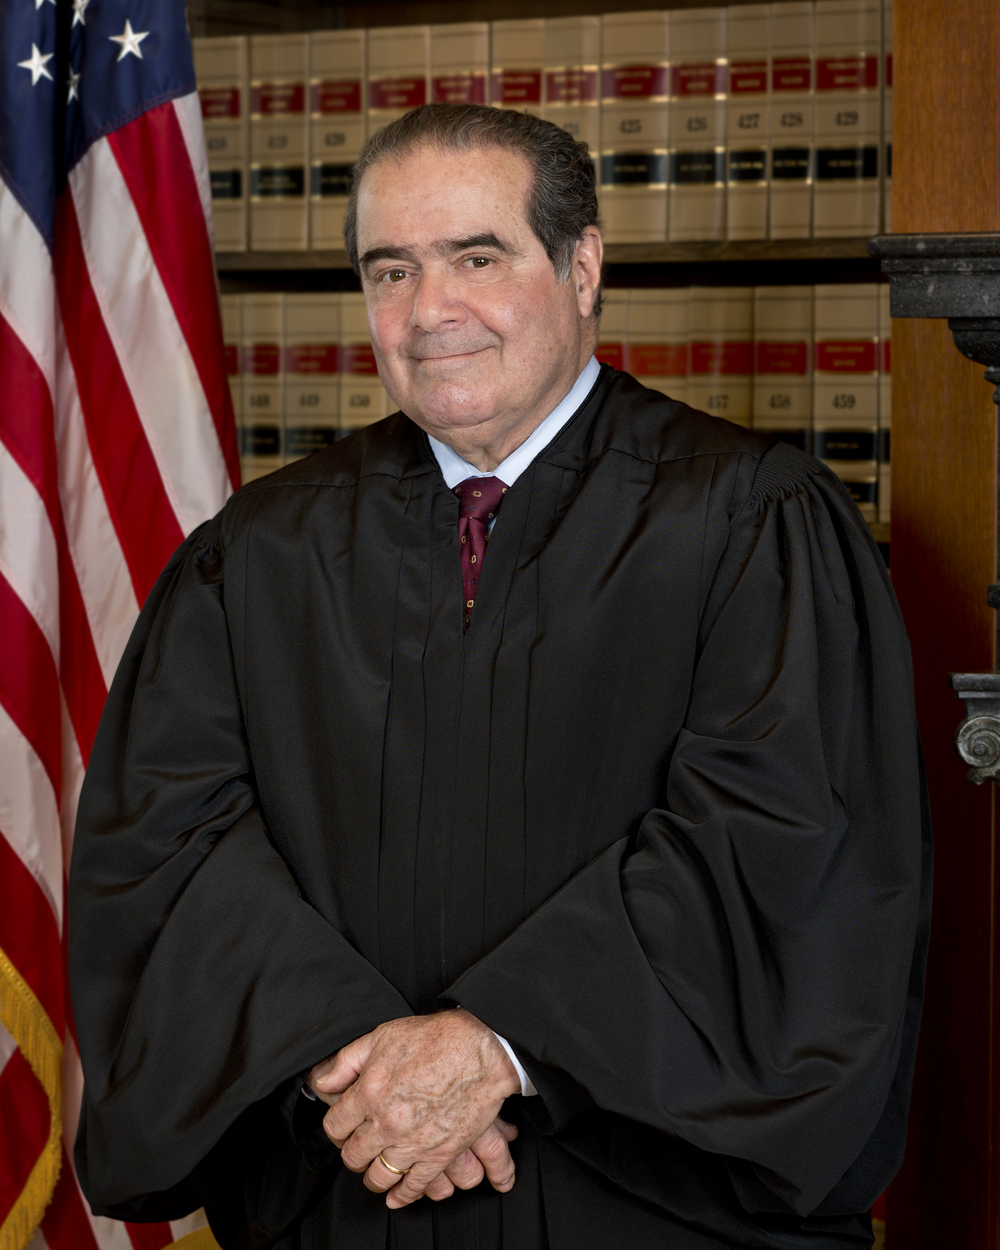 Supreme Court Justice Antonin Scalia died on Saturday. Credit: Wikimedia Commons.